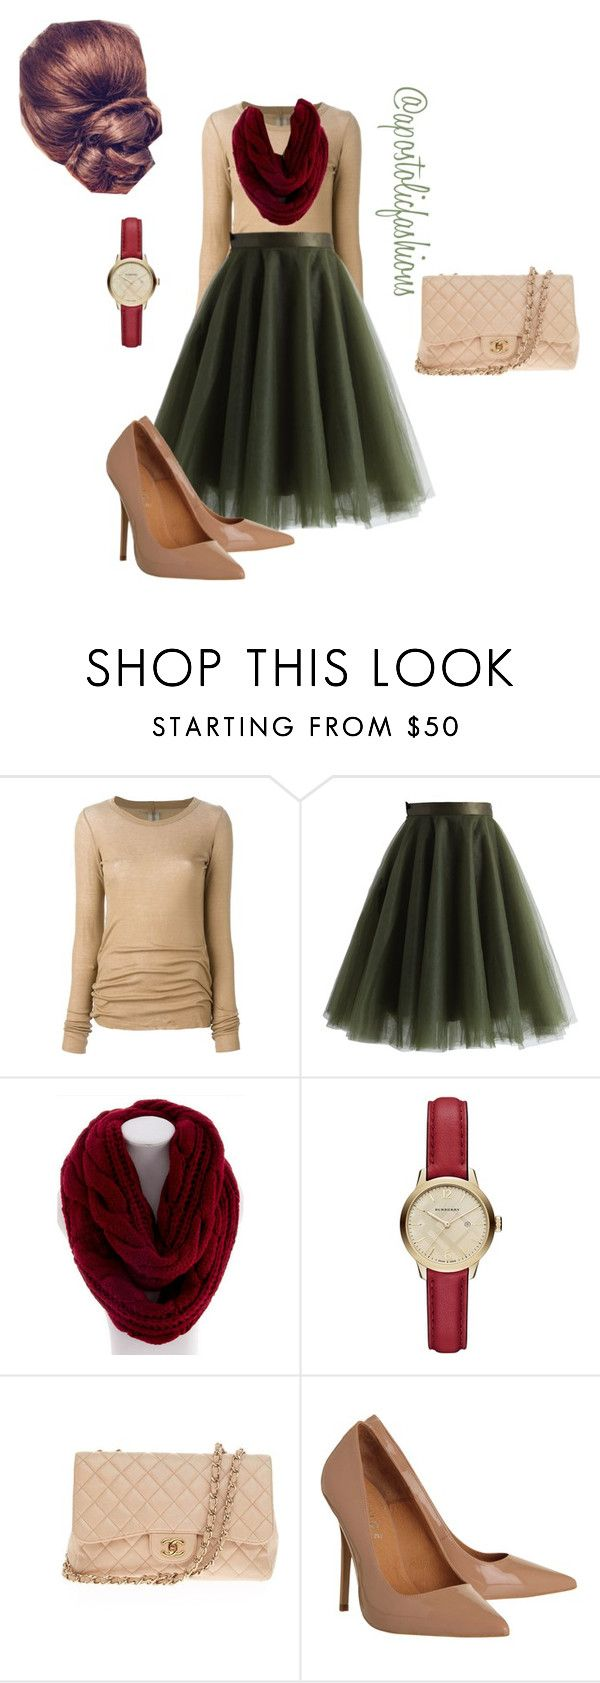 """""""Apostolic Fashions #1092"""" by apostolicfashions ❤ liked on Polyvore featuring Rick Owens, Chicwish, Essie, Burberry, Chanel and Office"""